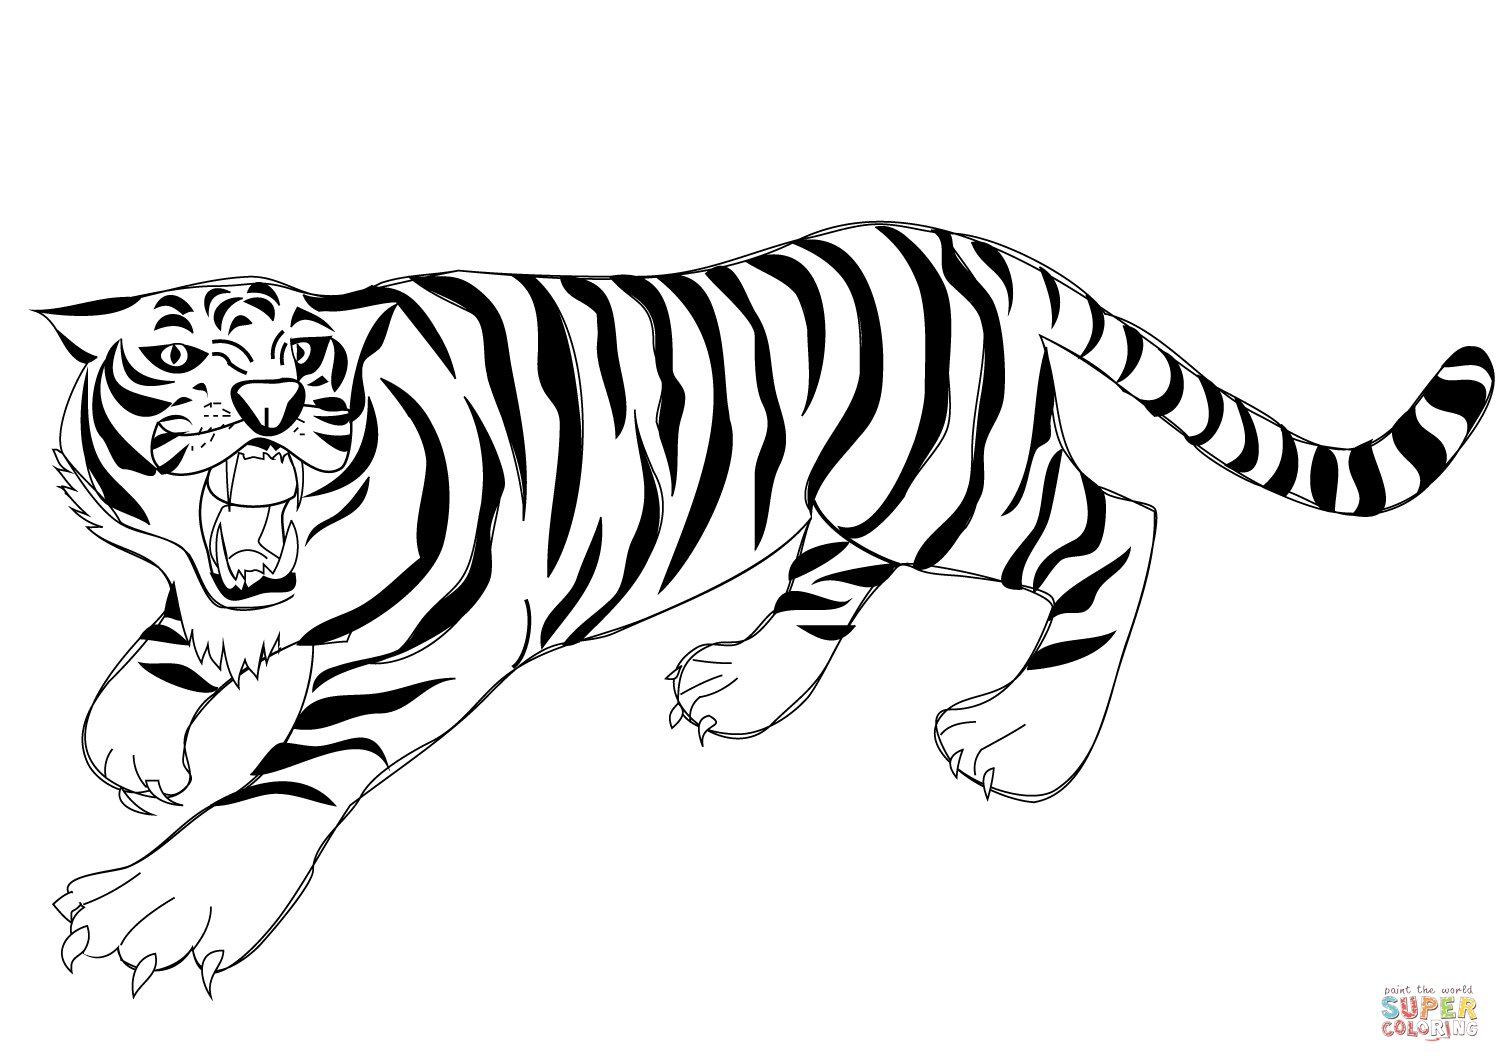 tiger pictures to print and color free printable animal tiger coloring pages color and tiger pictures to print